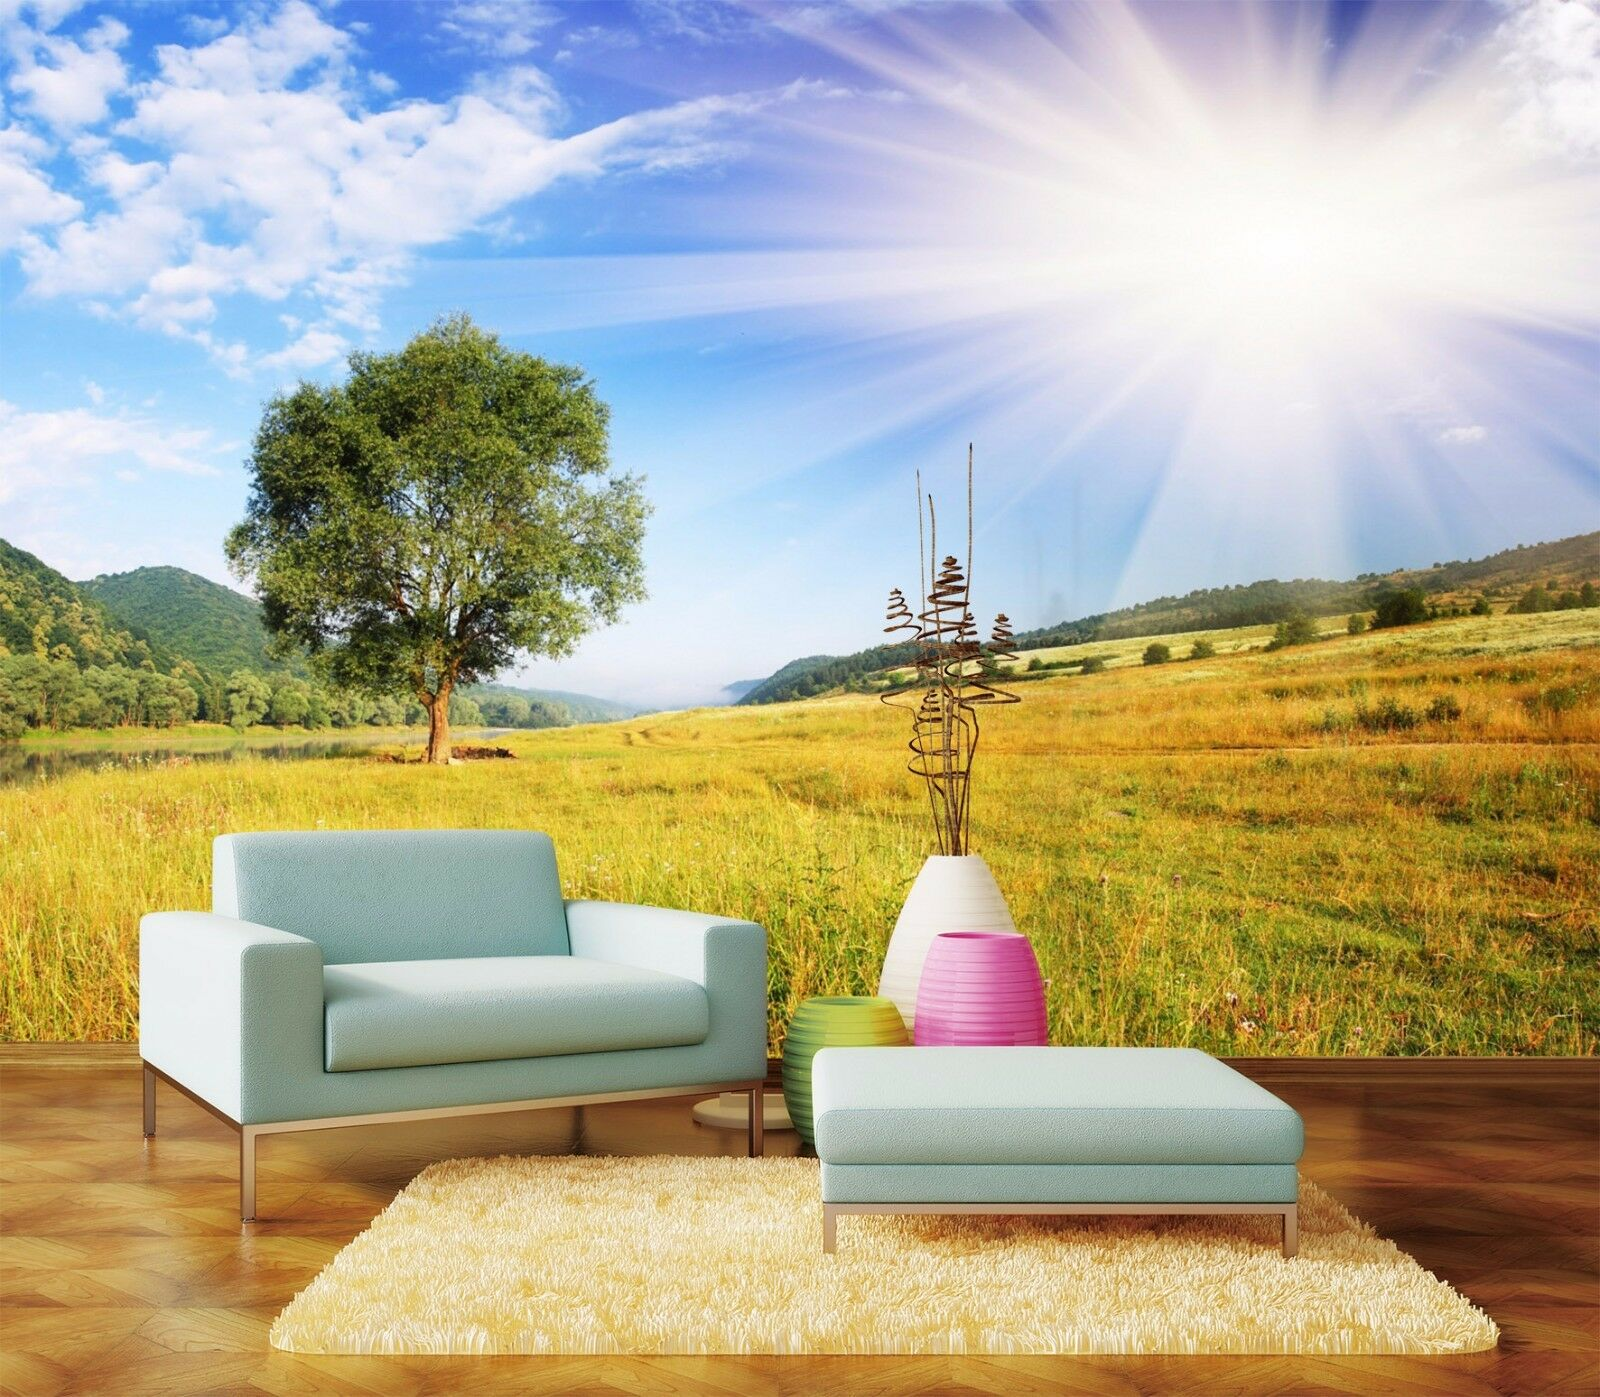 3D Lawn Sun 410 Wallpaper Murals Wall Print Wallpaper Mural AJ WALLPAPER UK